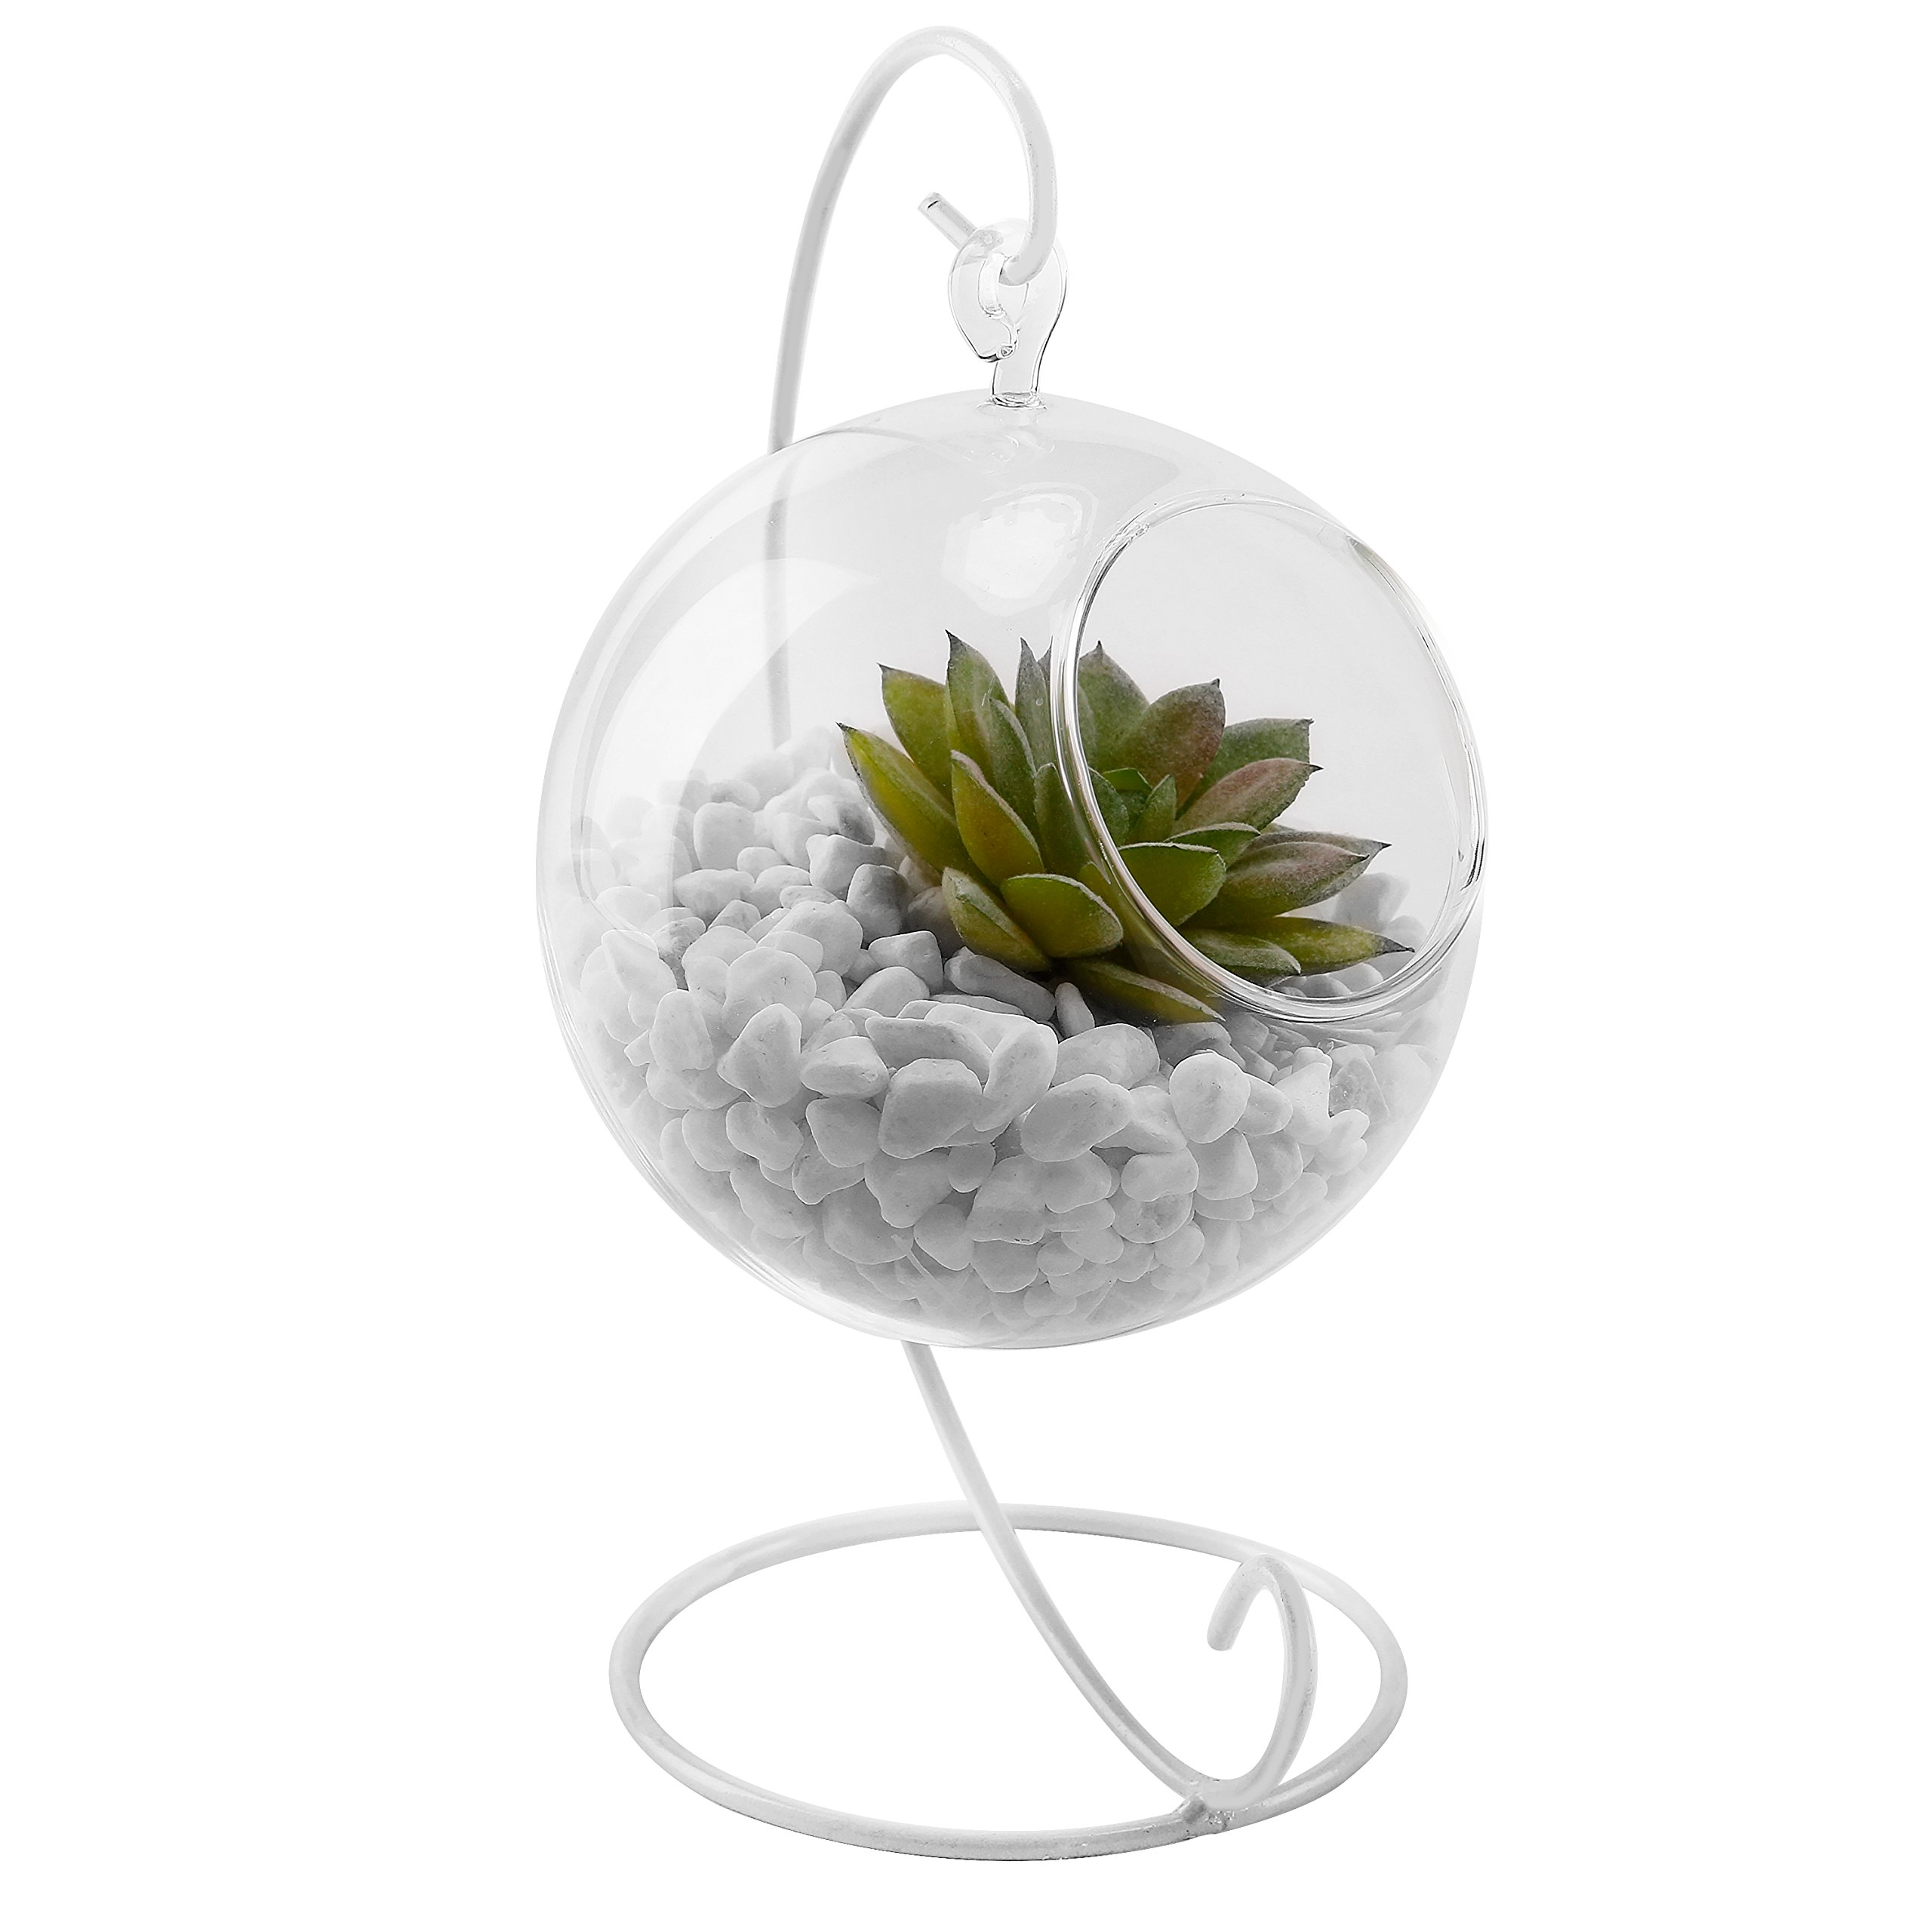 MyGift 4 Inch Clear Glass Hanging Terrarium Globe, Tea Light Candle Holder Lantern with White Metal Stand